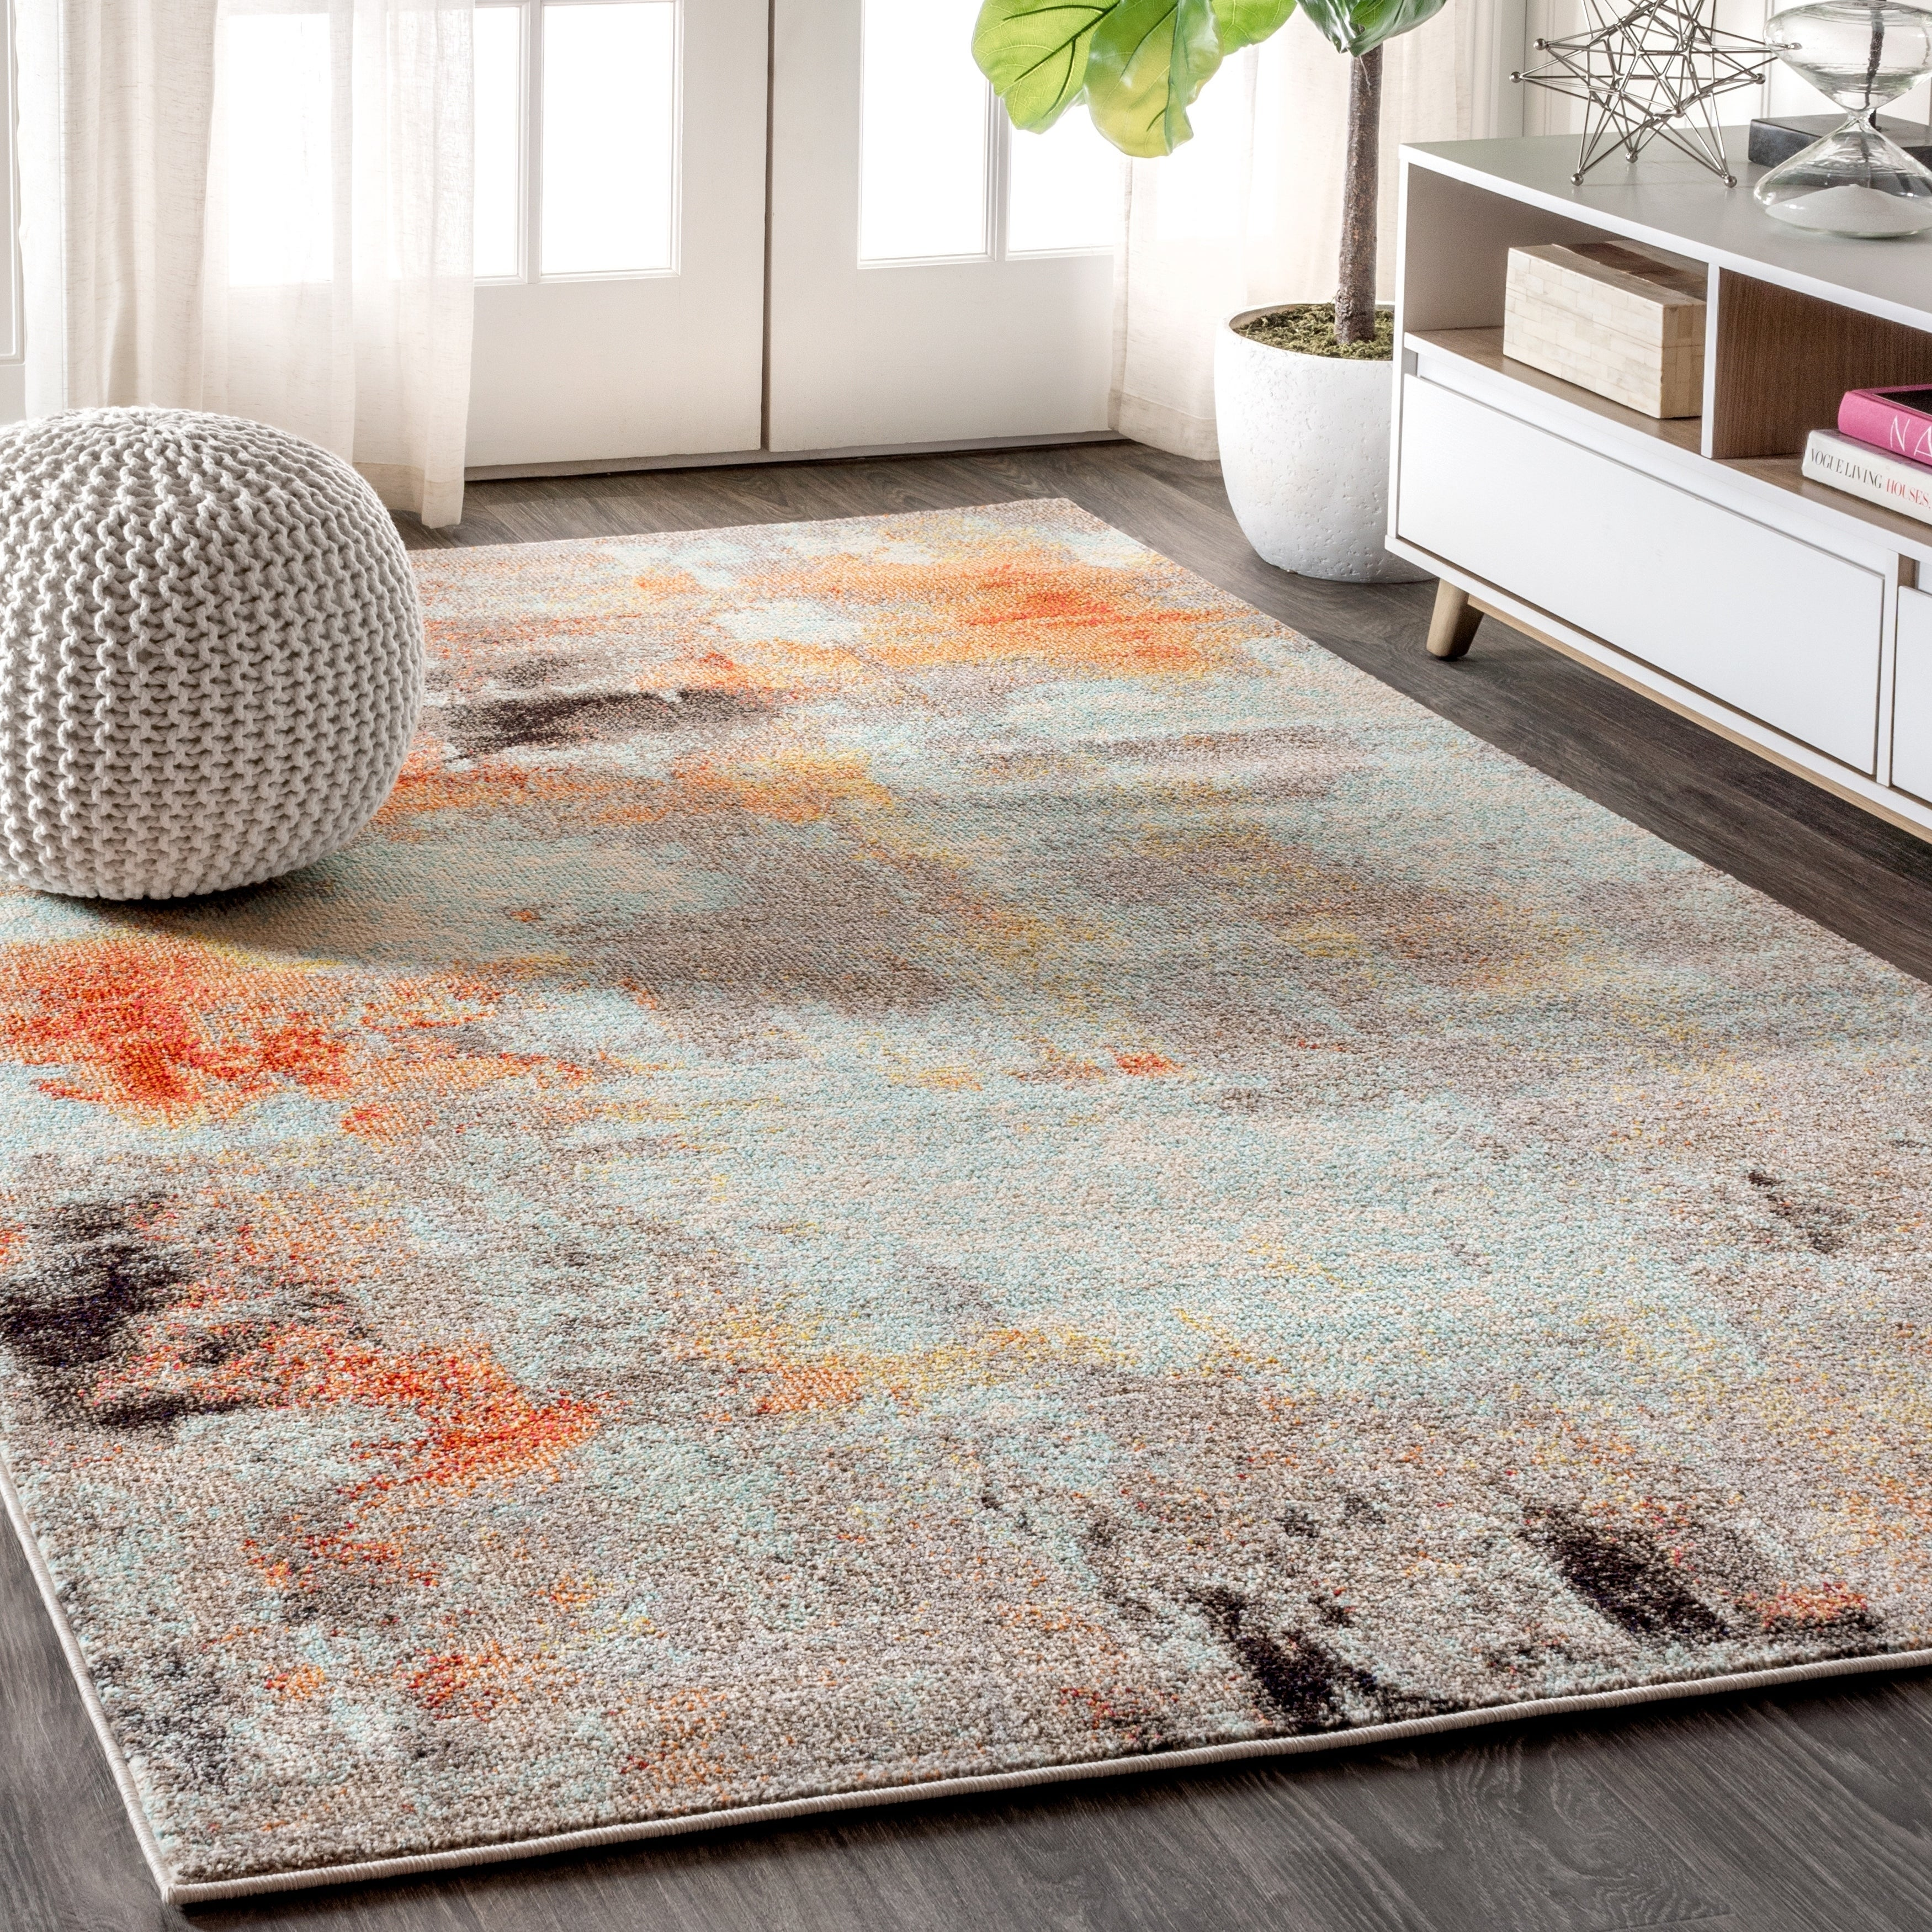 ~Trendz Contemporary Geometric Pattern Abstract Modern Area Rug Orange All Sizes